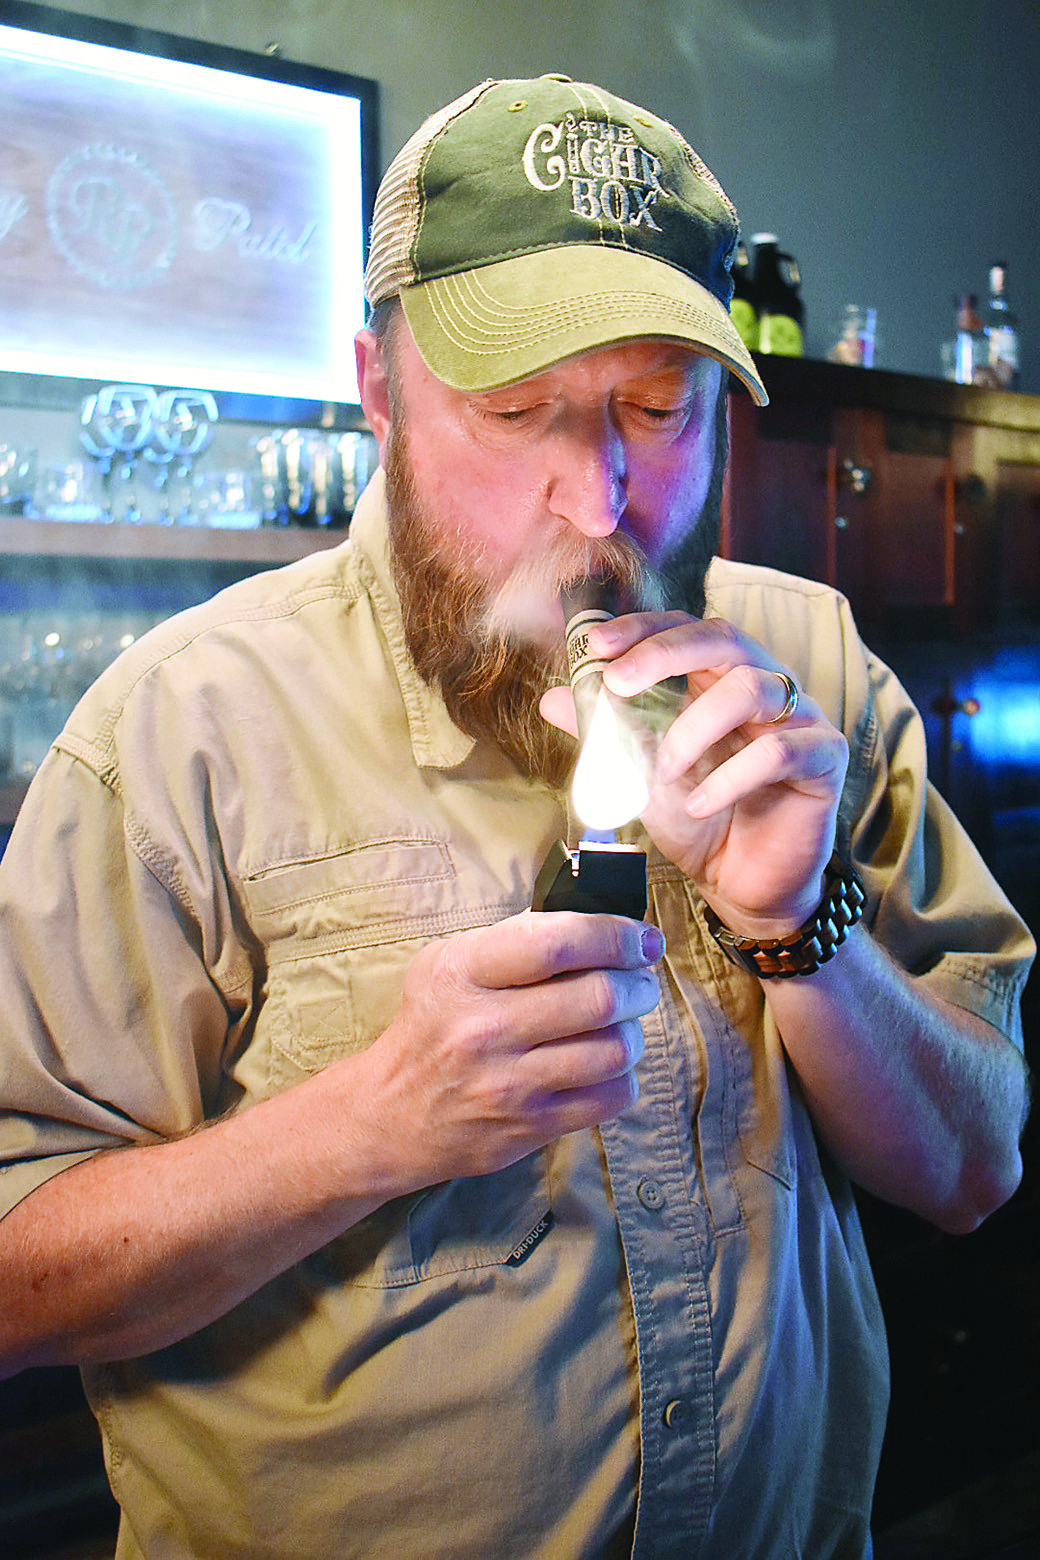 Shawn Doss, the owner of The Cigar Box, lights up a cigar on Tuesday before a ribbon-cutting ceremony for the cigar store and cigar lounge.